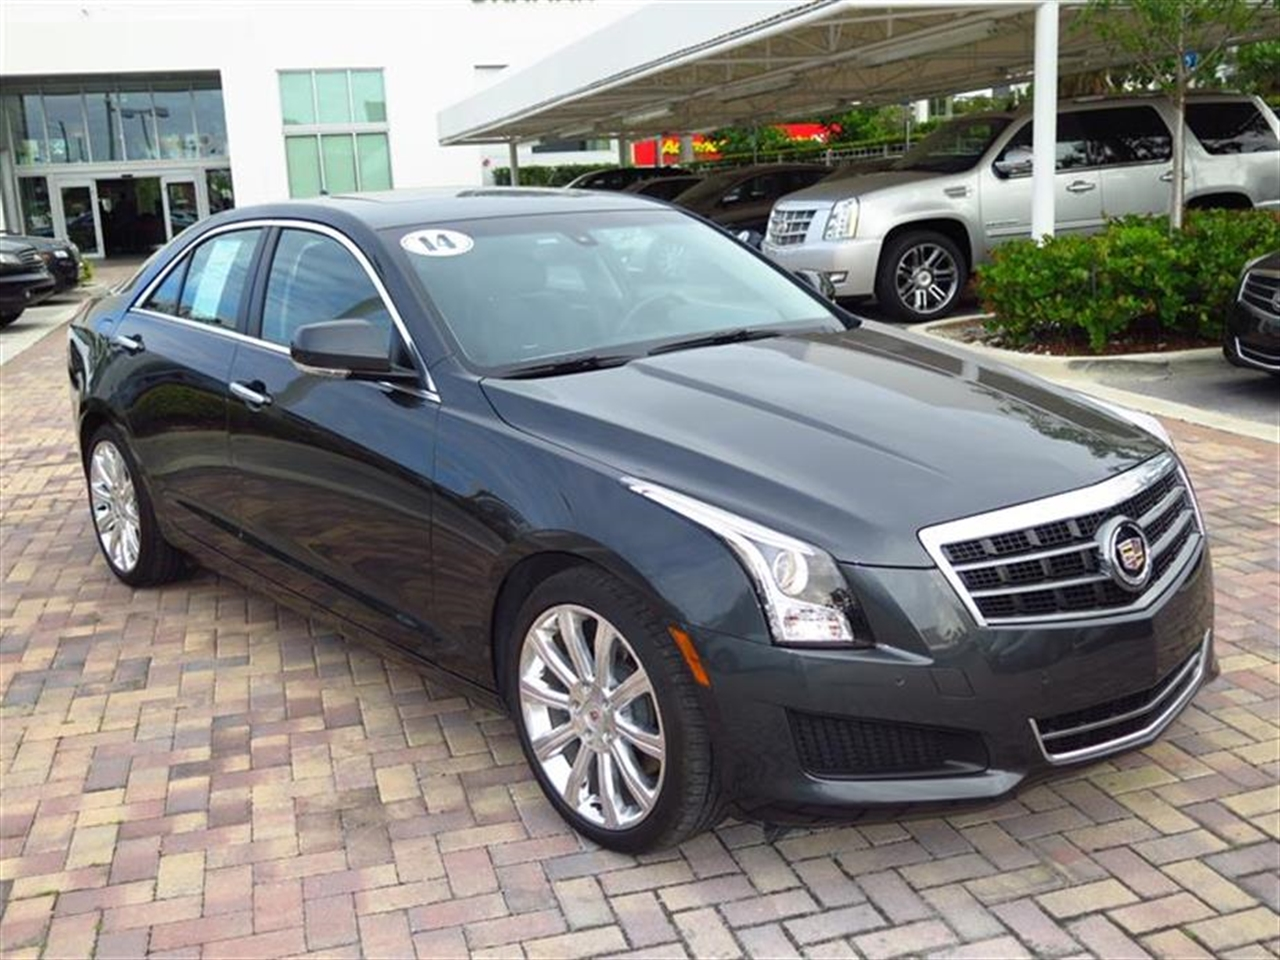 2014 CADILLAC ATS 4dr Sdn 20L Luxury RWD 9374 miles Adaptive Remote Start Not available with M3